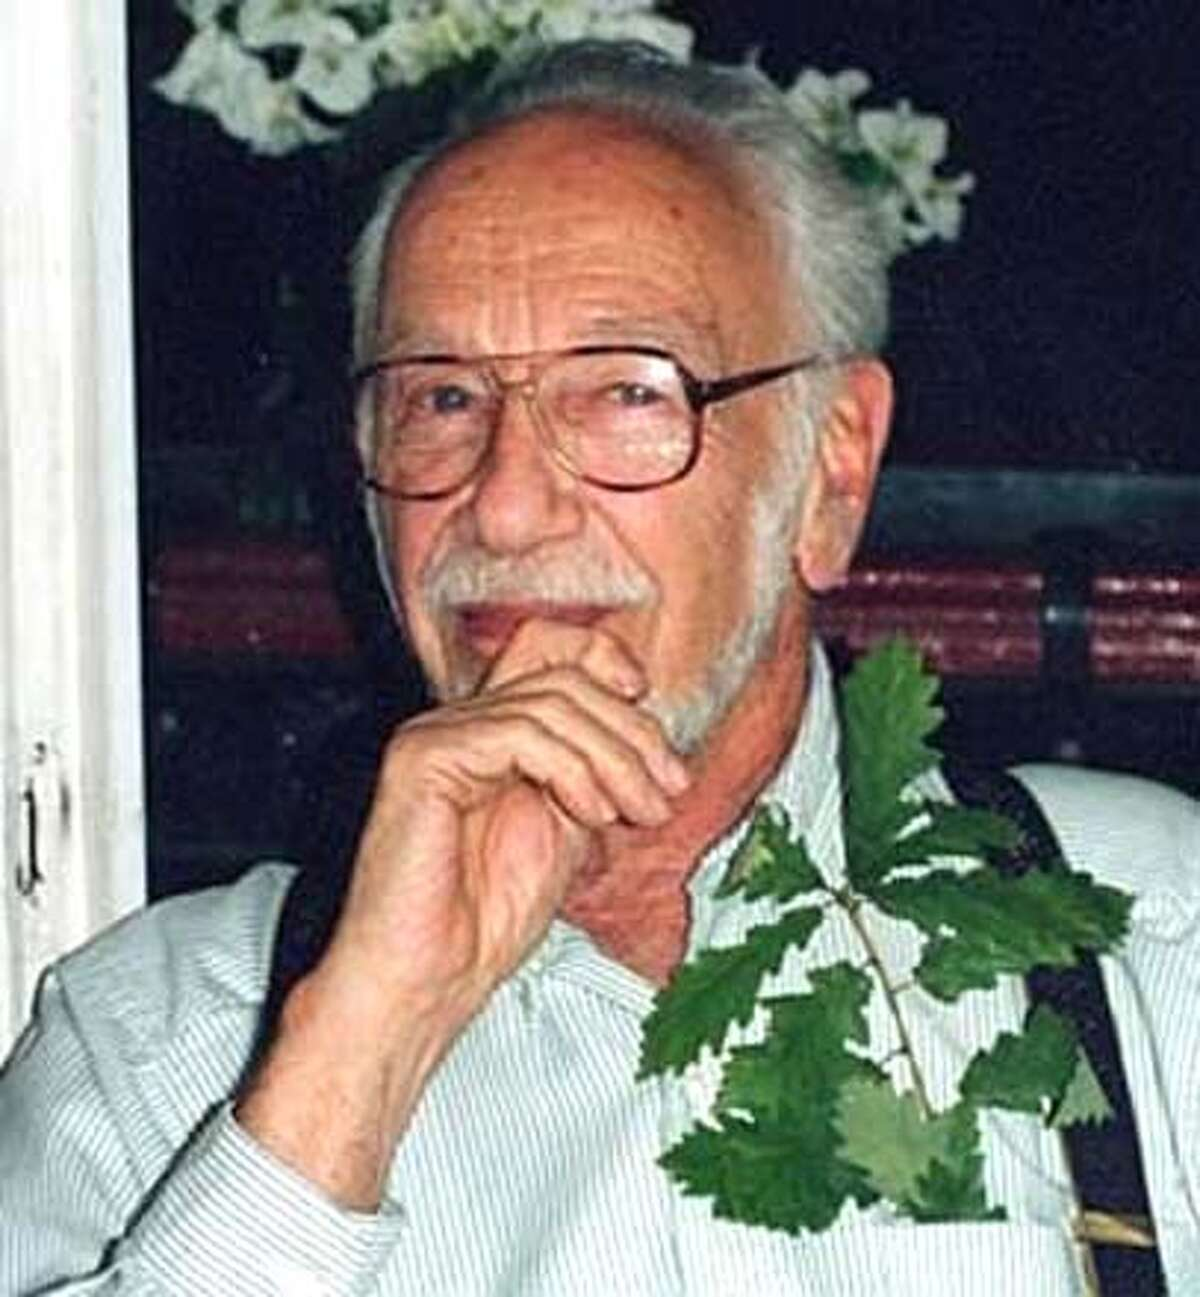 ###Live Caption:Obit photo of David Gale, famous math professor at UC Berkeley and a creator of puzzles###Caption History:Obit photo of David Gale, famous math professor at UC Berkeley and a creator of puzzles###Notes:###Special Instructions: